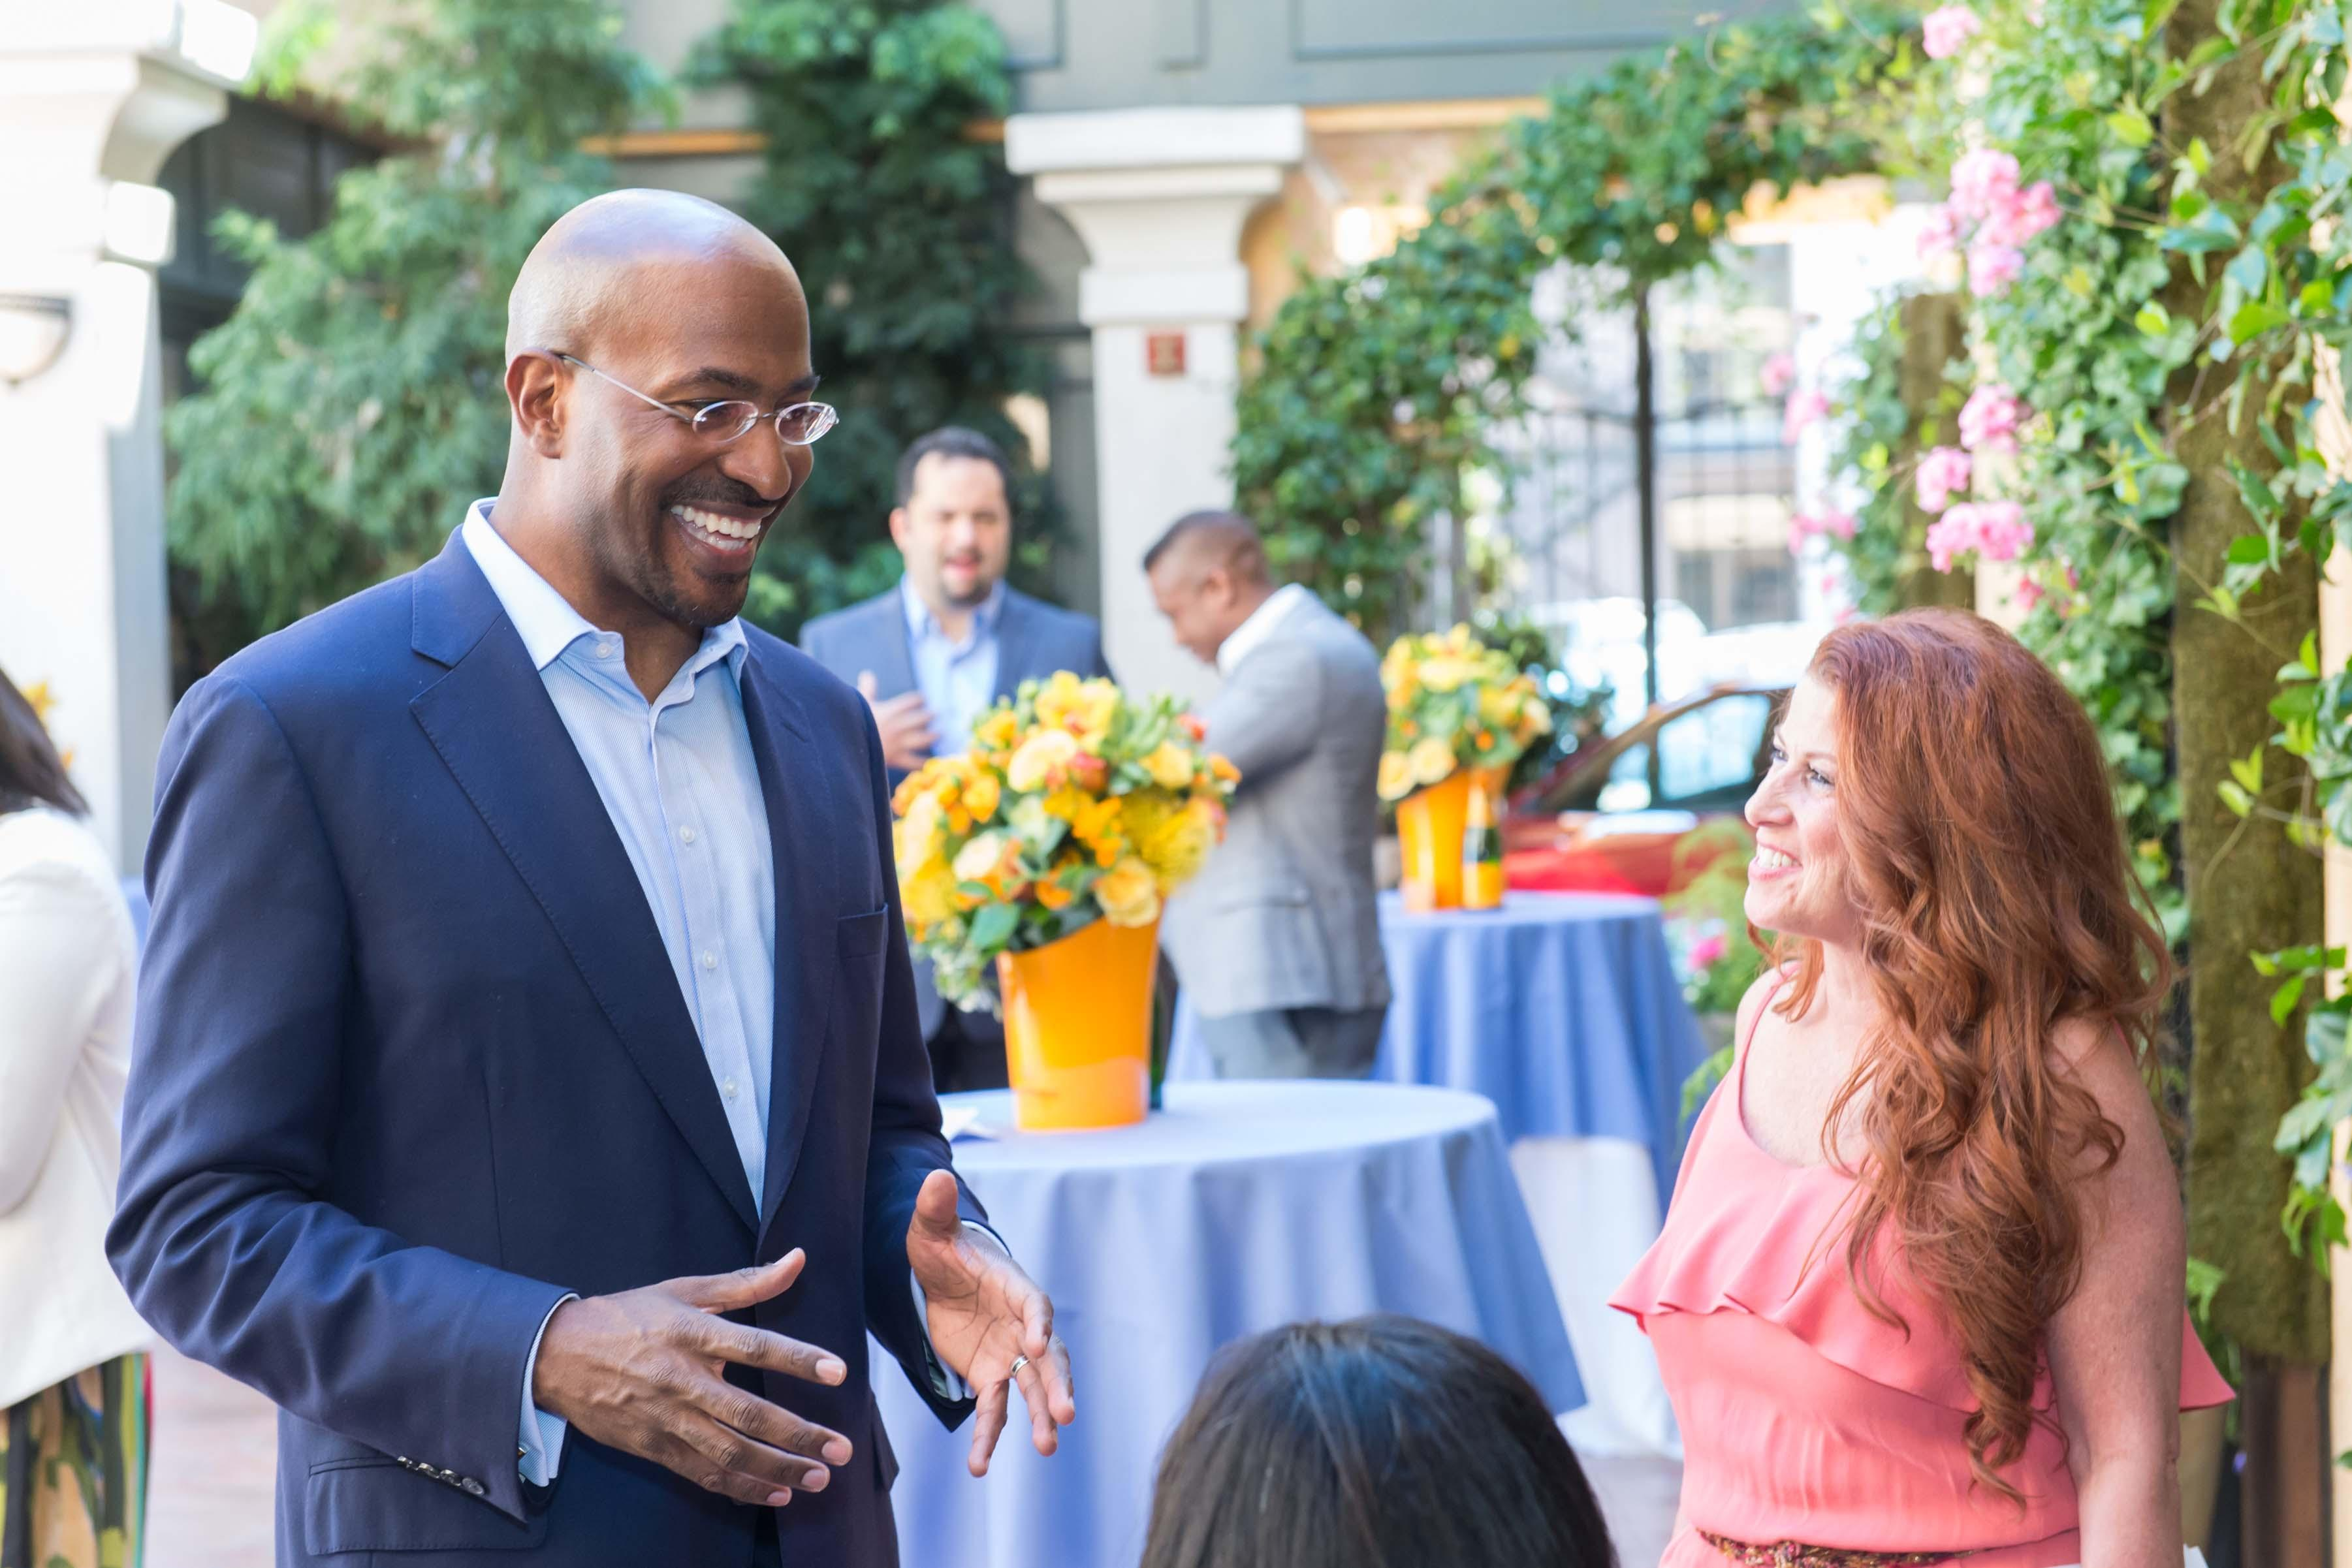 Over 200 black leaders in Silicon Valley gathered in Palo Alto to discuss diversity in tech